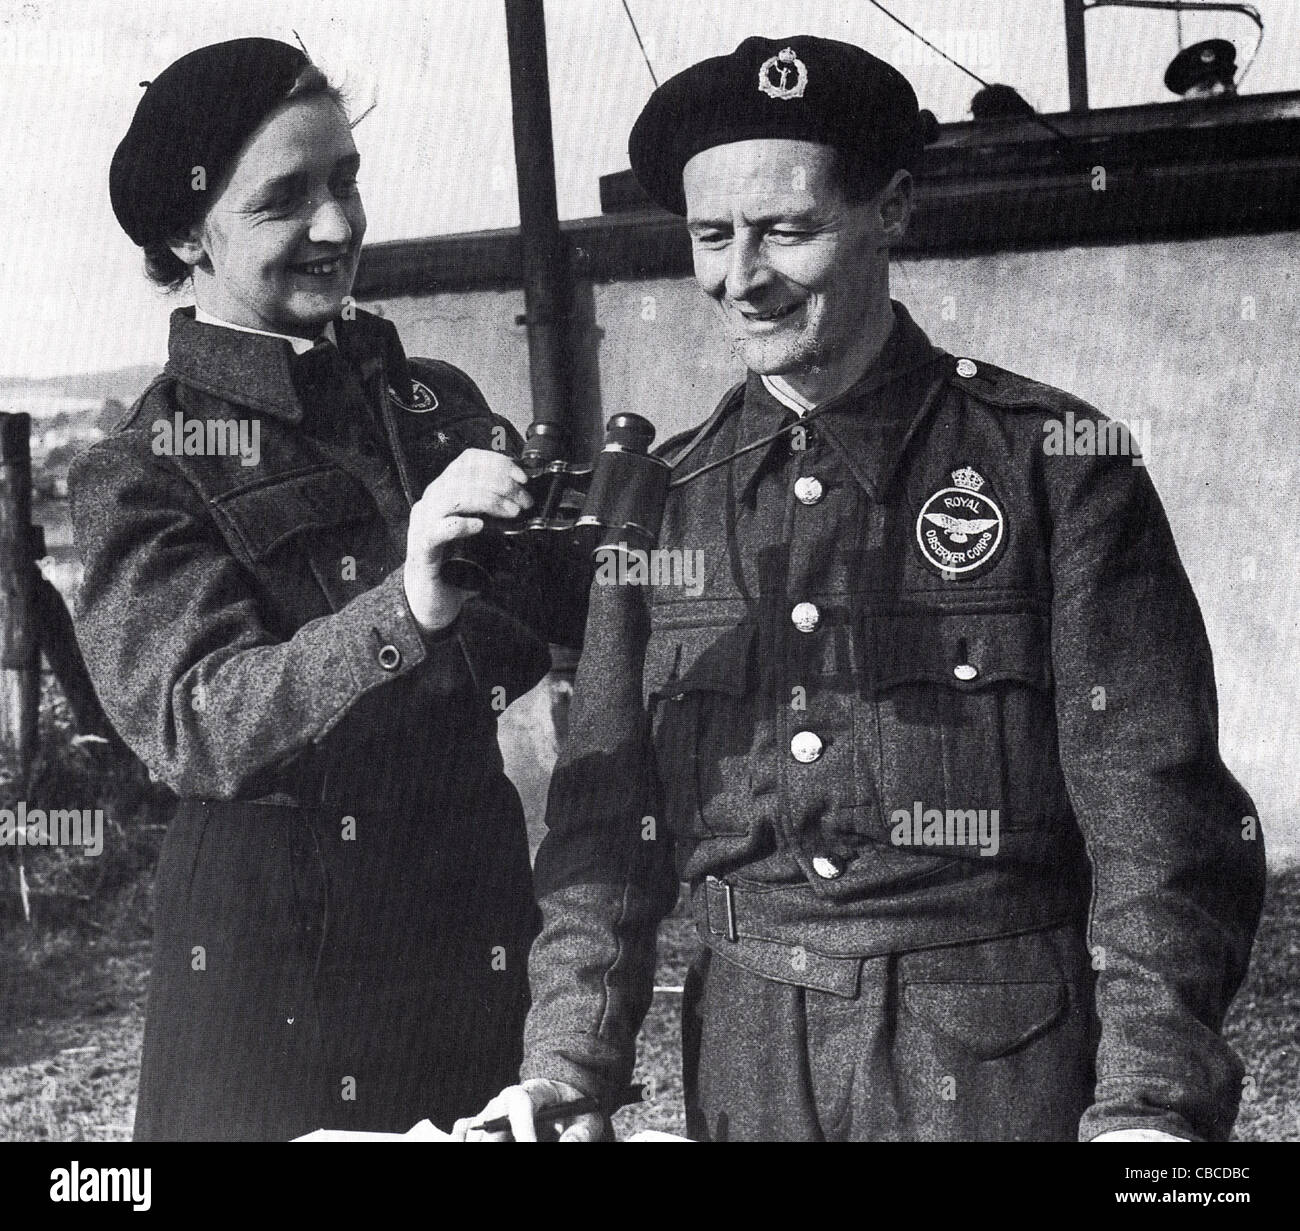 British WW11 Royal Observer Corps operators. This service monitored enemy aircraft to give advance warning of bombing - Stock Image